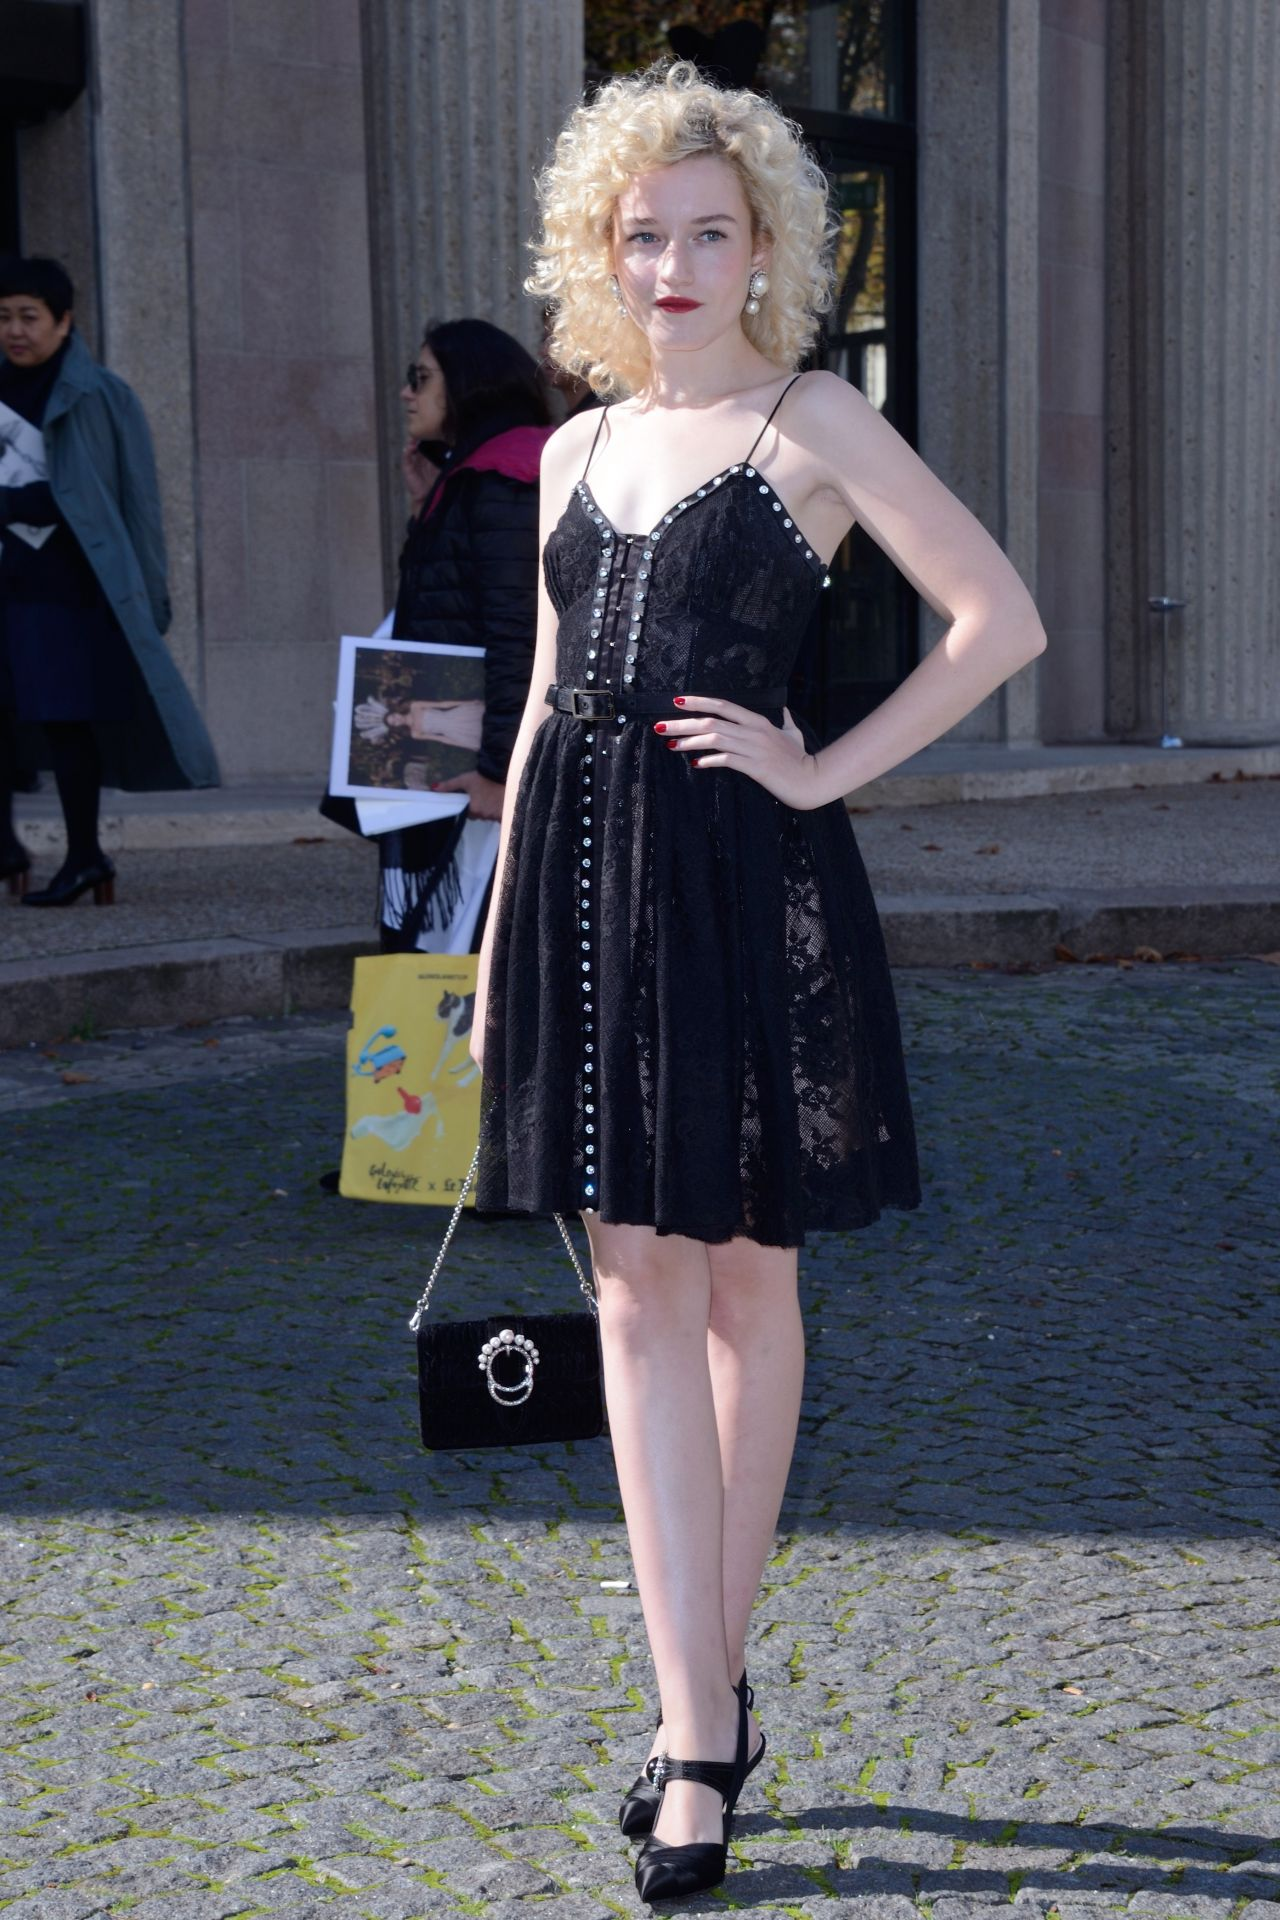 Julia Garner Miu Miu Fashion Show In Paris 10 03 2017